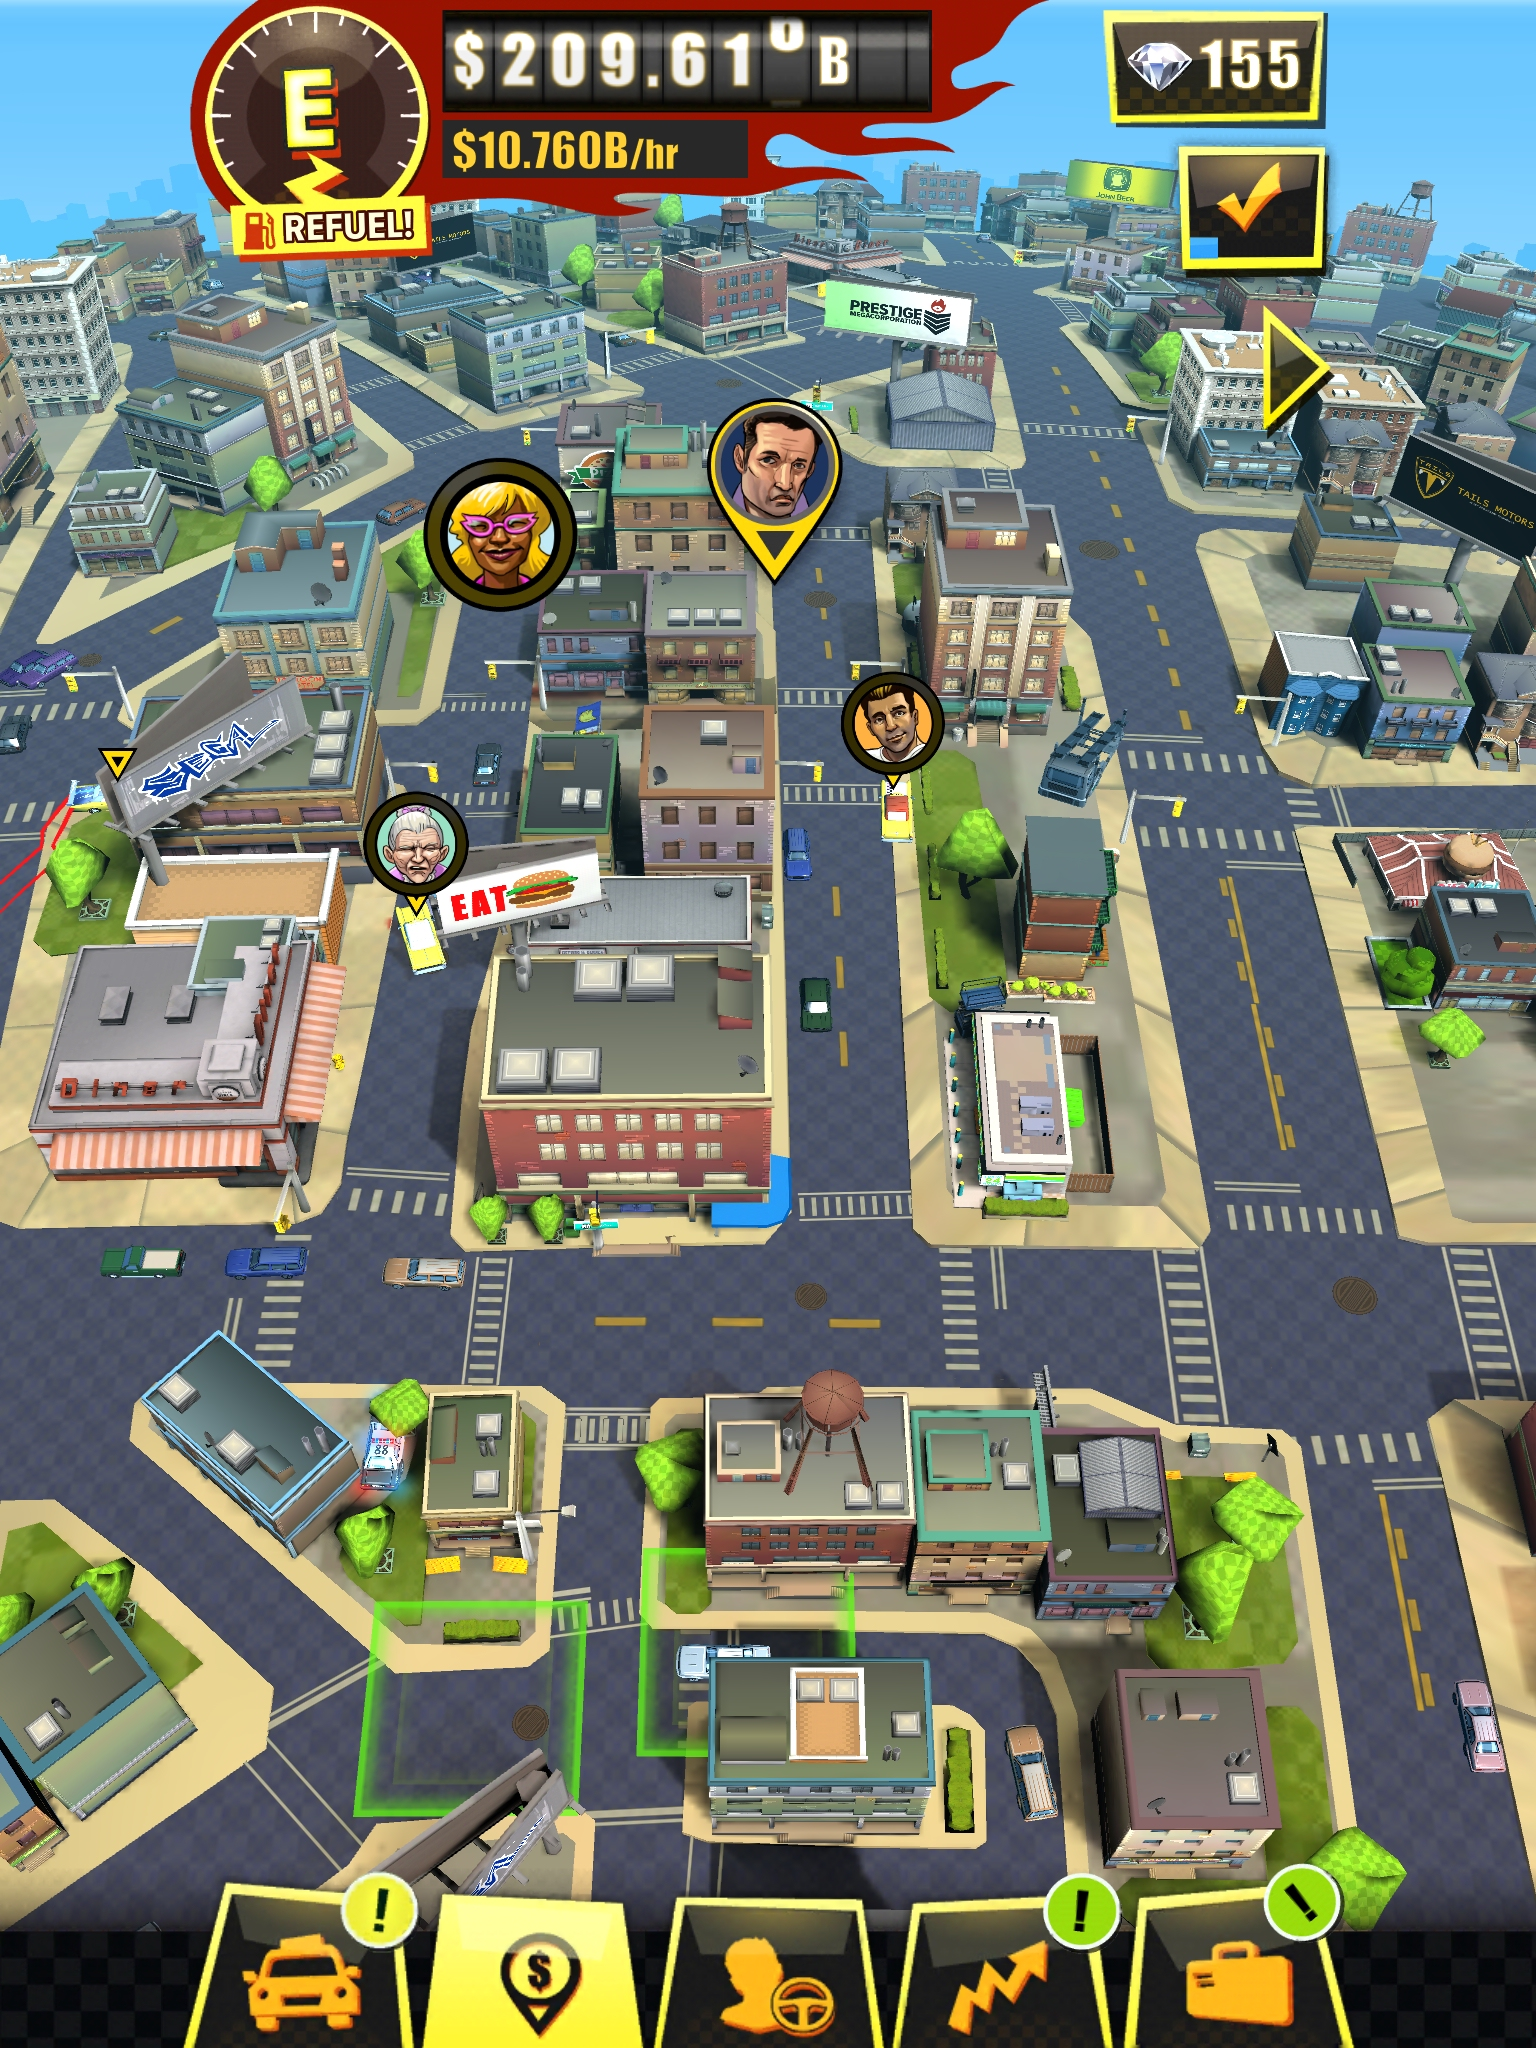 Crazy Taxi Gazillionaire review - An idle clicker with a ker-azy economy